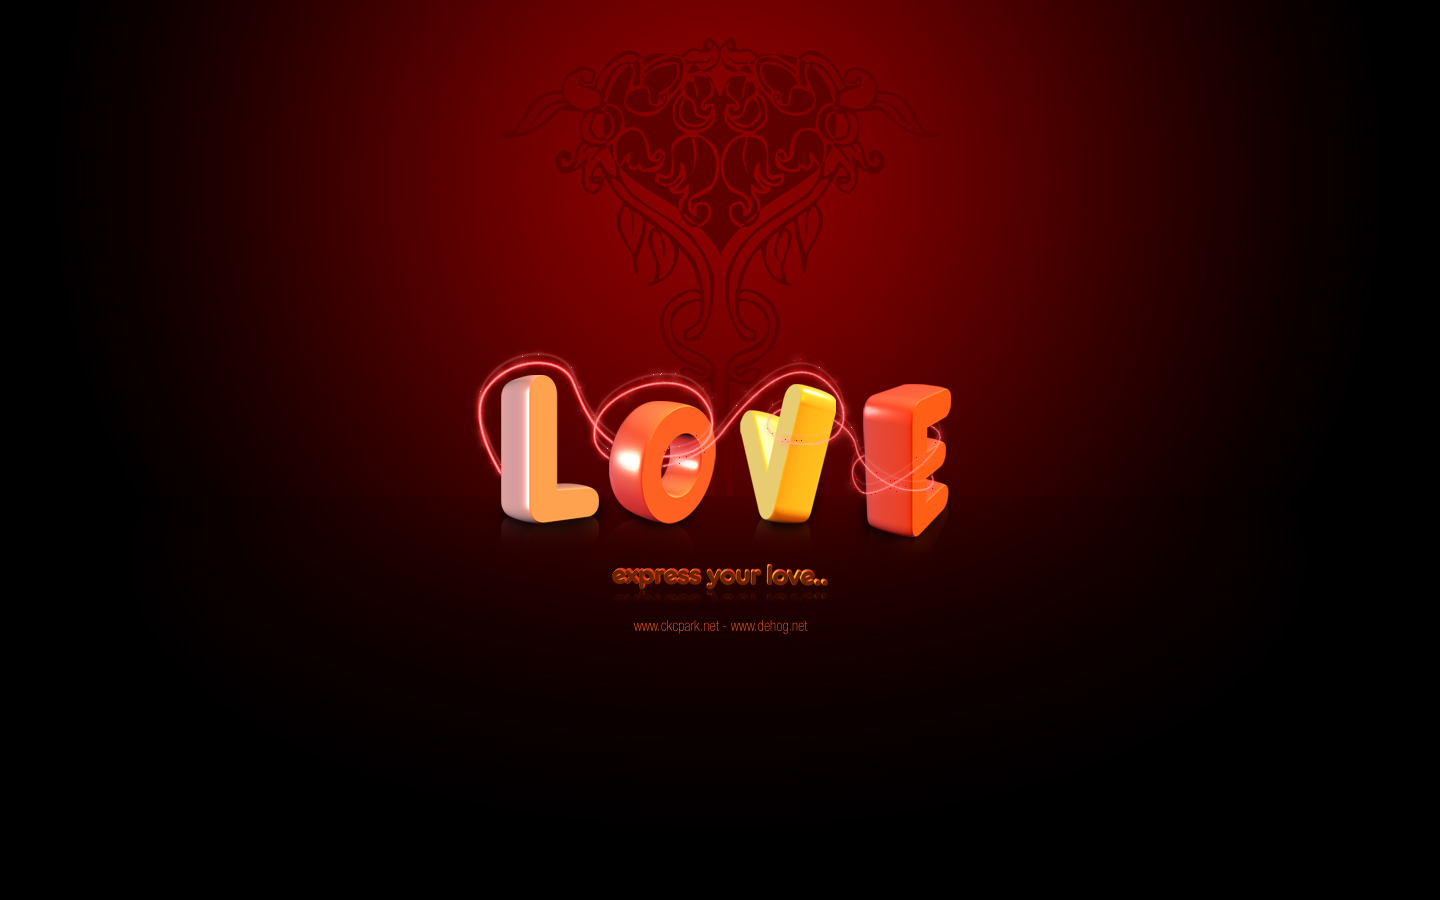 Love Wallpaper Hd High Resolution : Love High Definition Wallpaper - Wallpaper, High Definition, High Quality, Widescreen